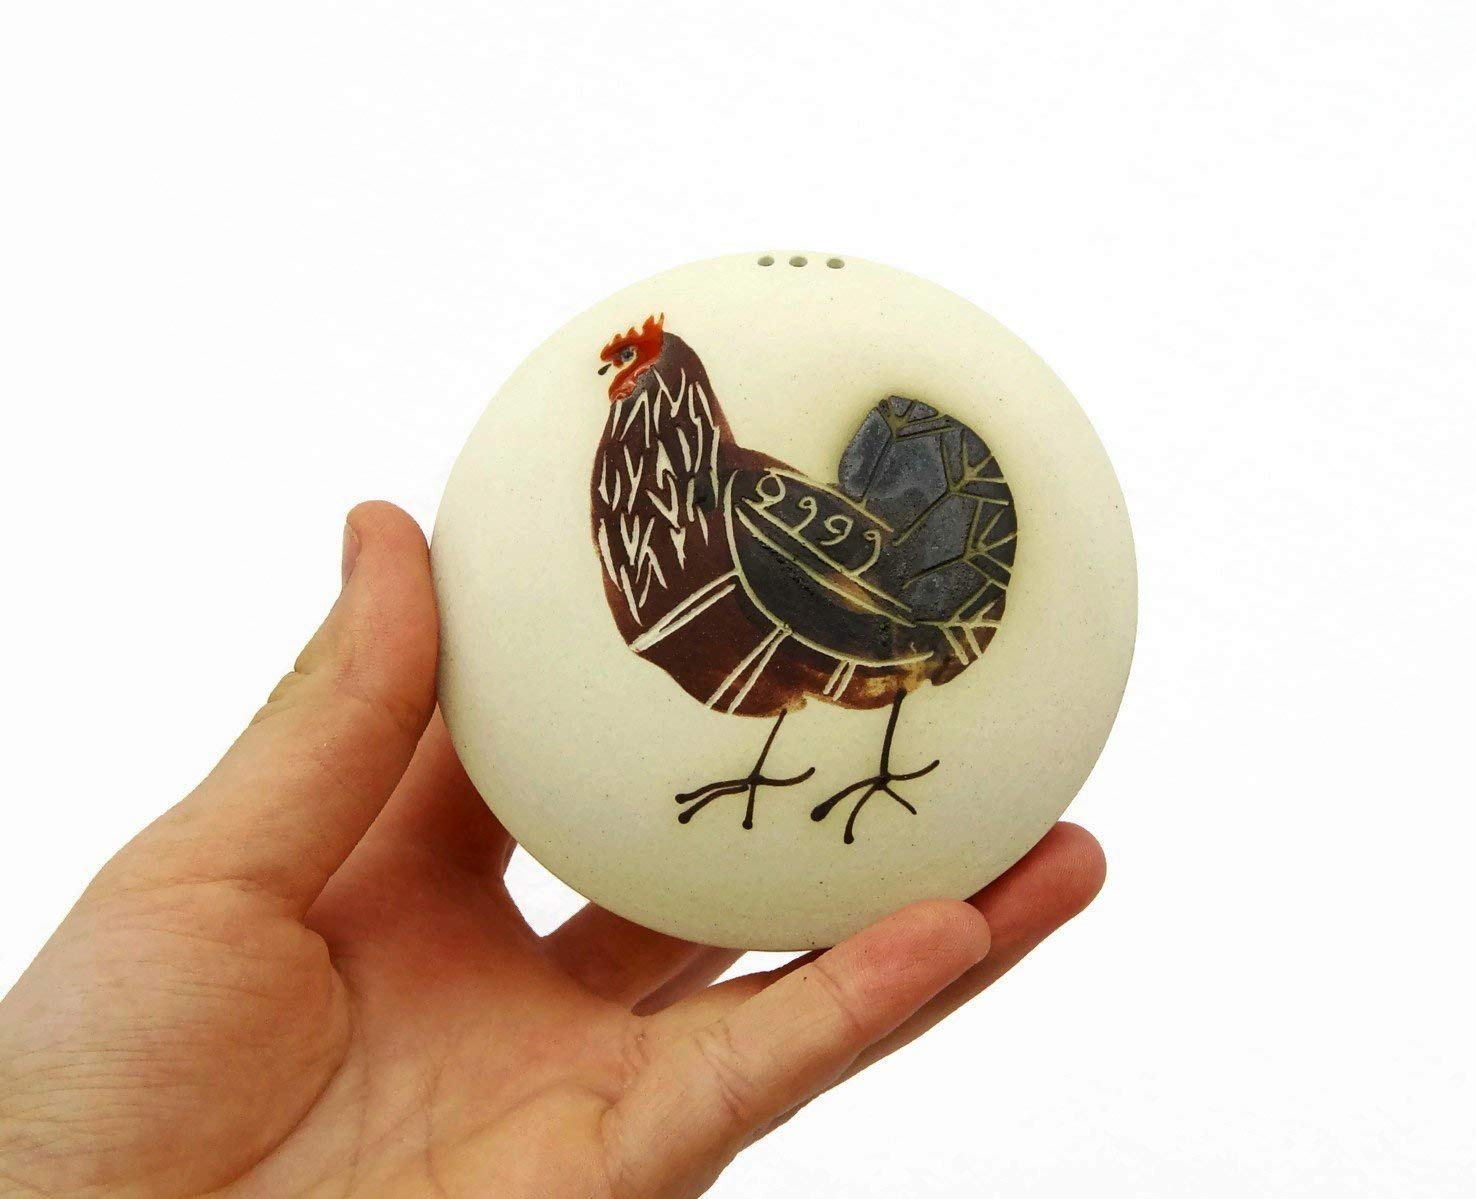 Unique functional and decorative item. Made of Stoneware Salt or Pepper Shaker with a Painting of a Rooster